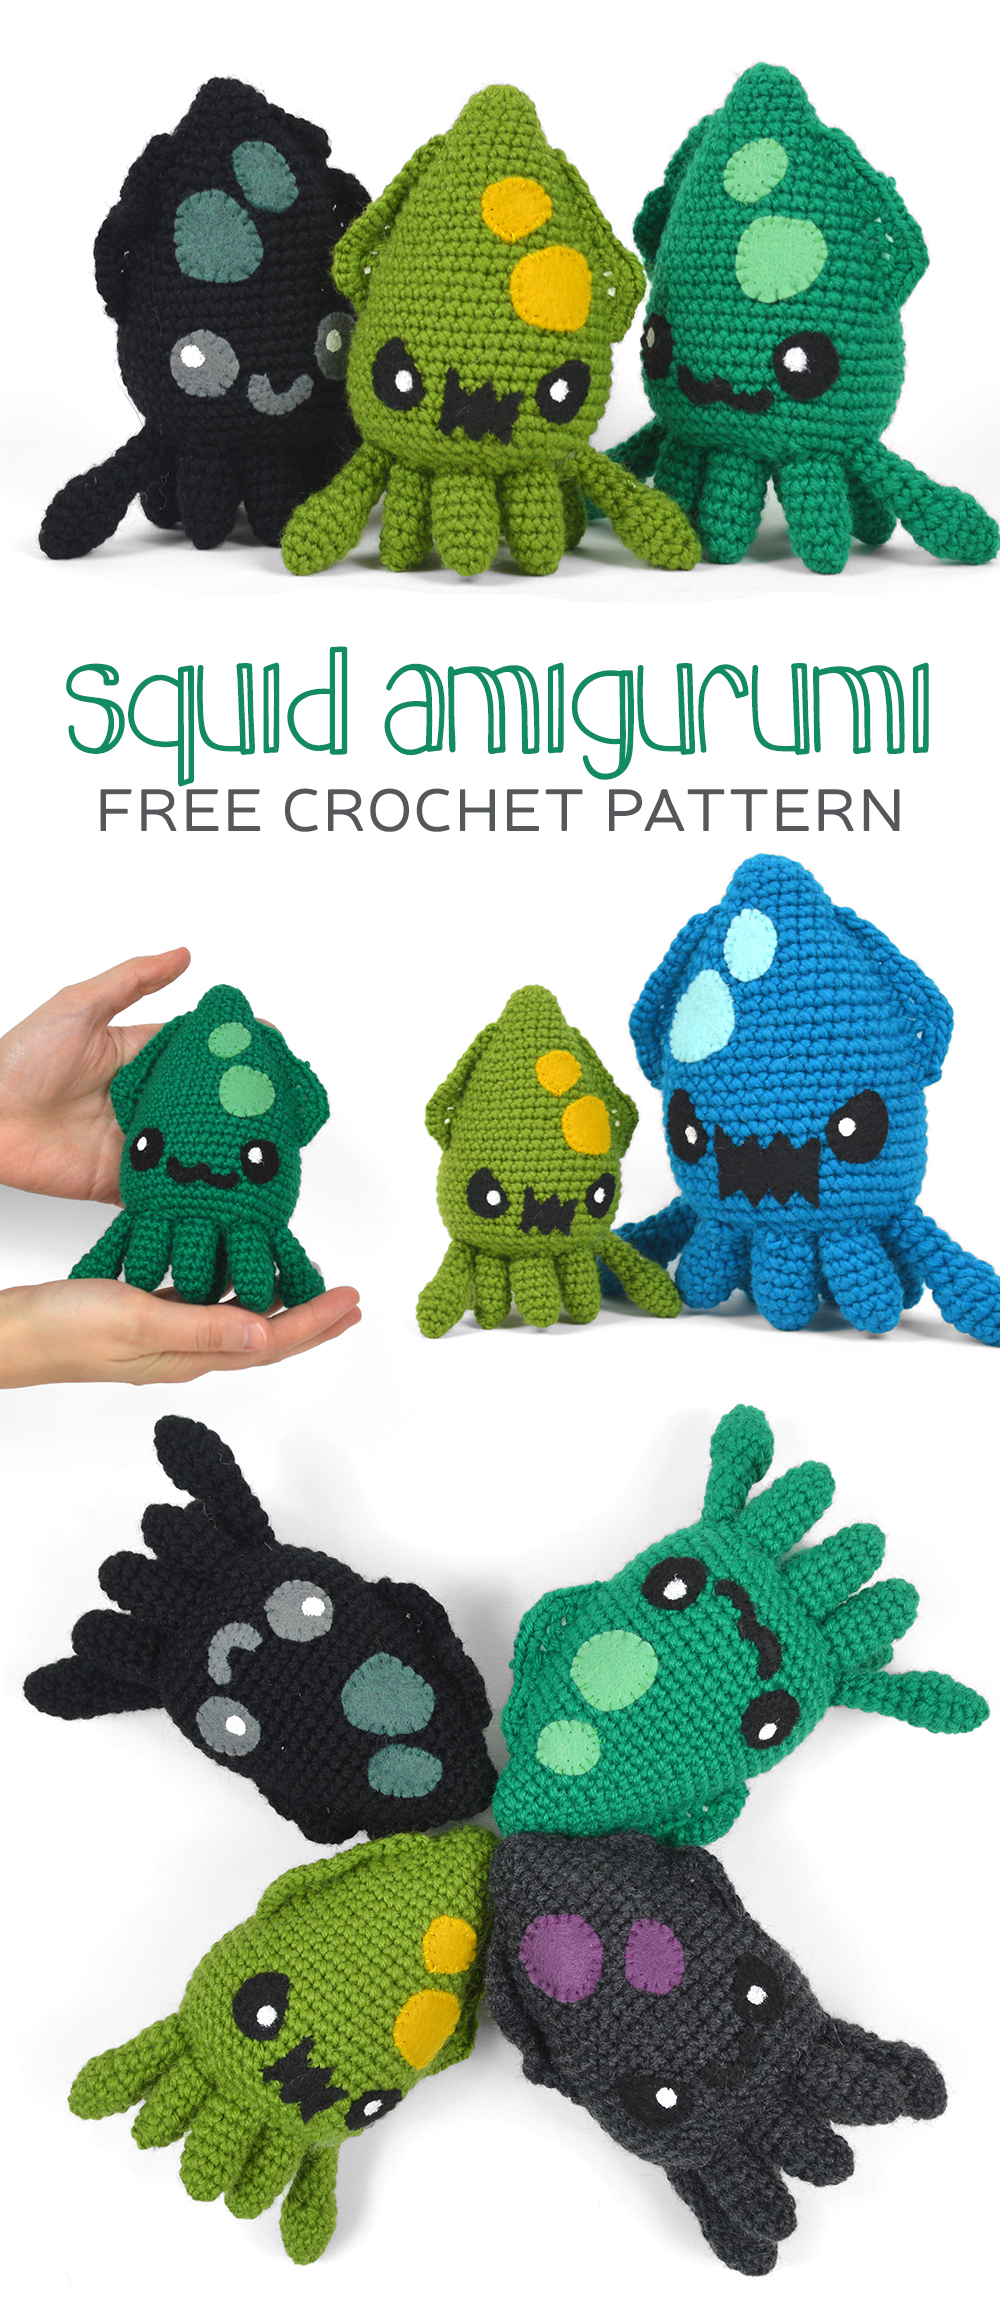 10 Shark Crochet Patterns (Free) + Nautical Design Ideas ... | 2310x1000